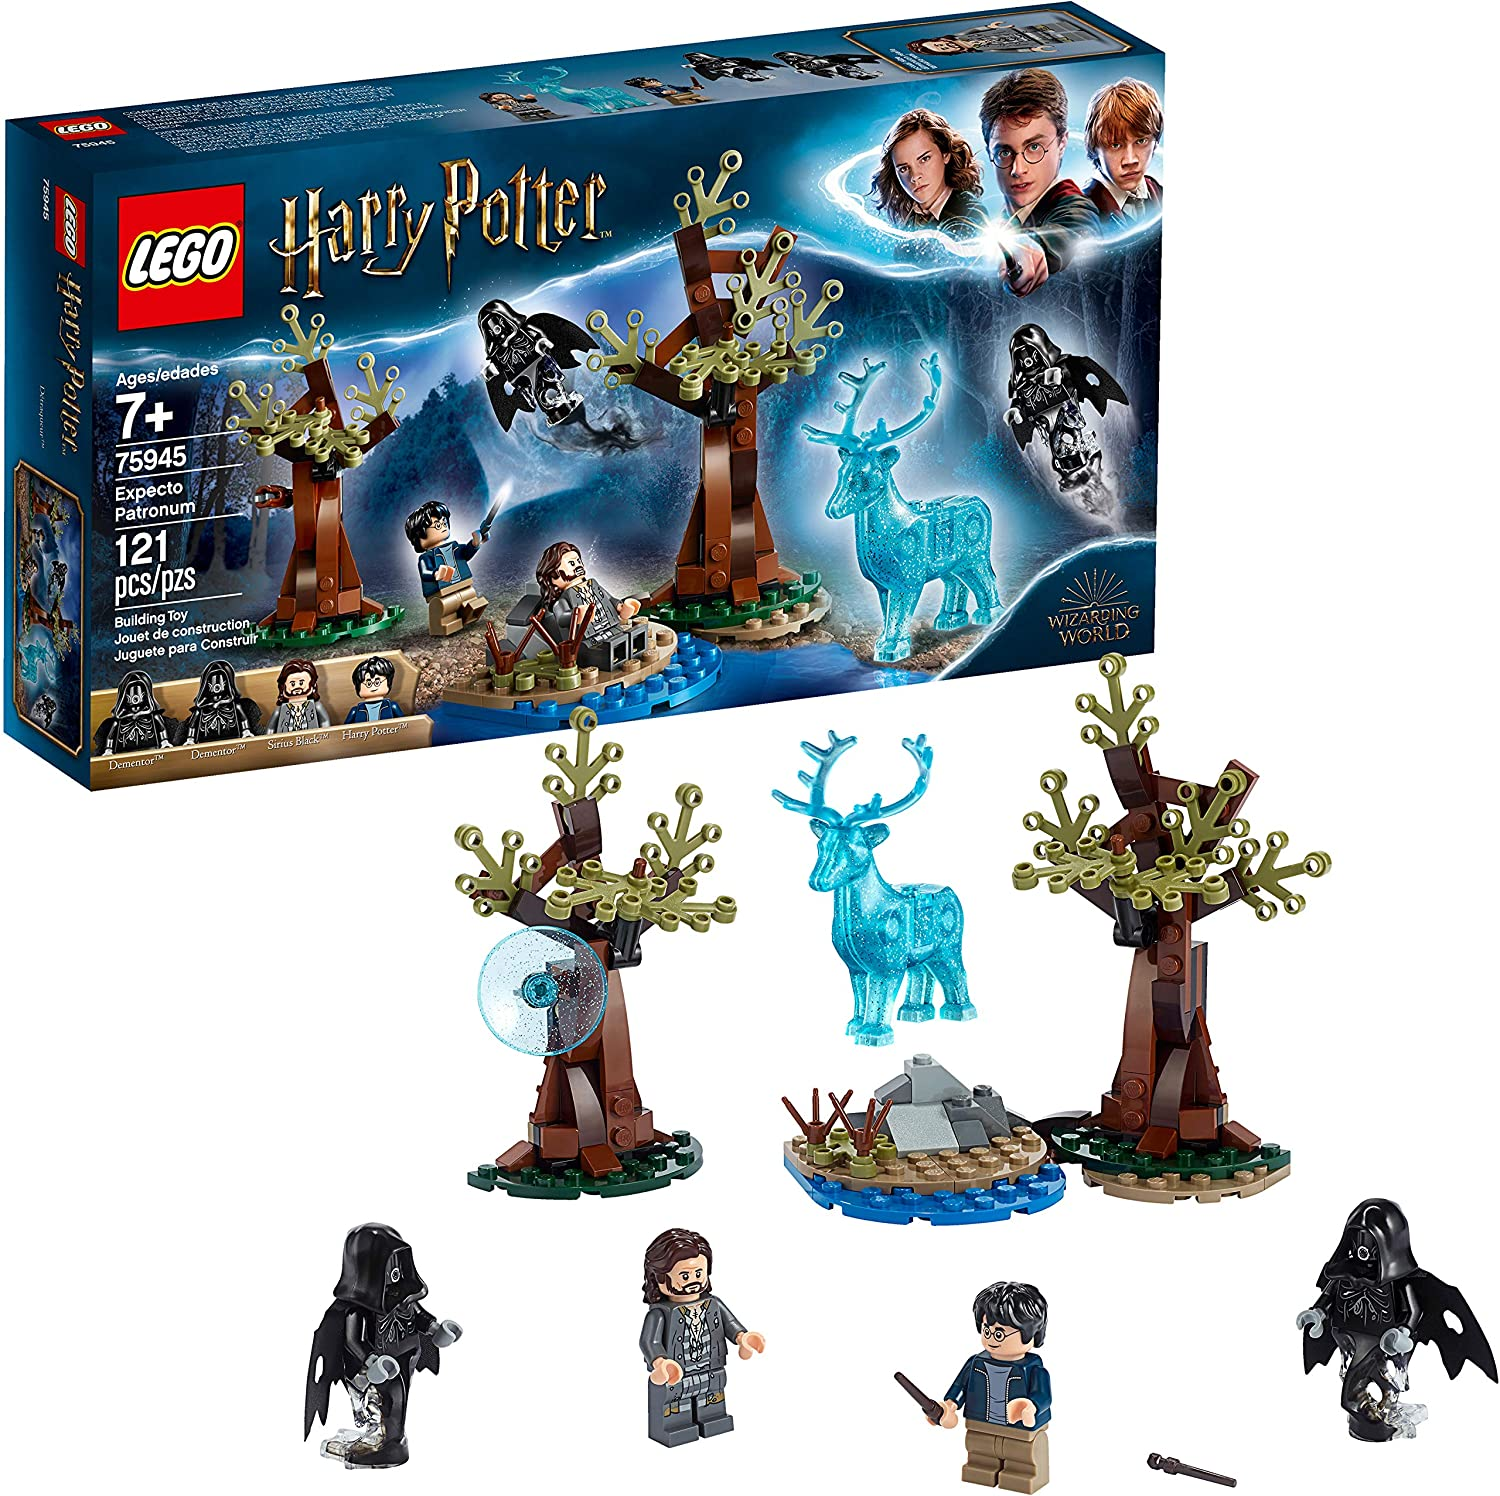 Lego Harry Potter And The Prisoner Of Azkaban Expecto Patronum 75945 Building Kit 121 Pieces Toys Games